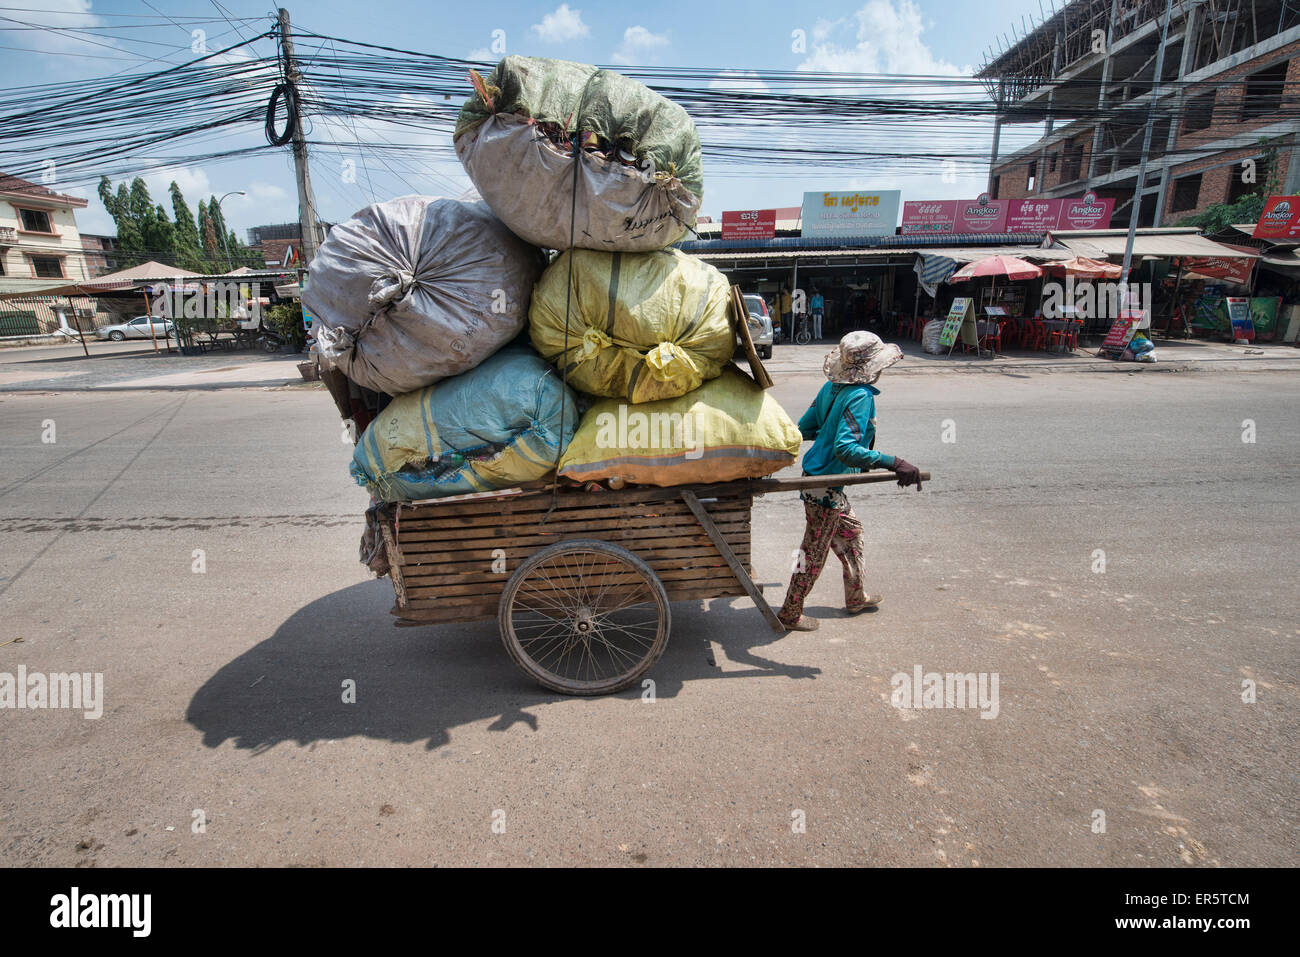 Carrying a big load in Siem Reap, Cambodia - Stock Image